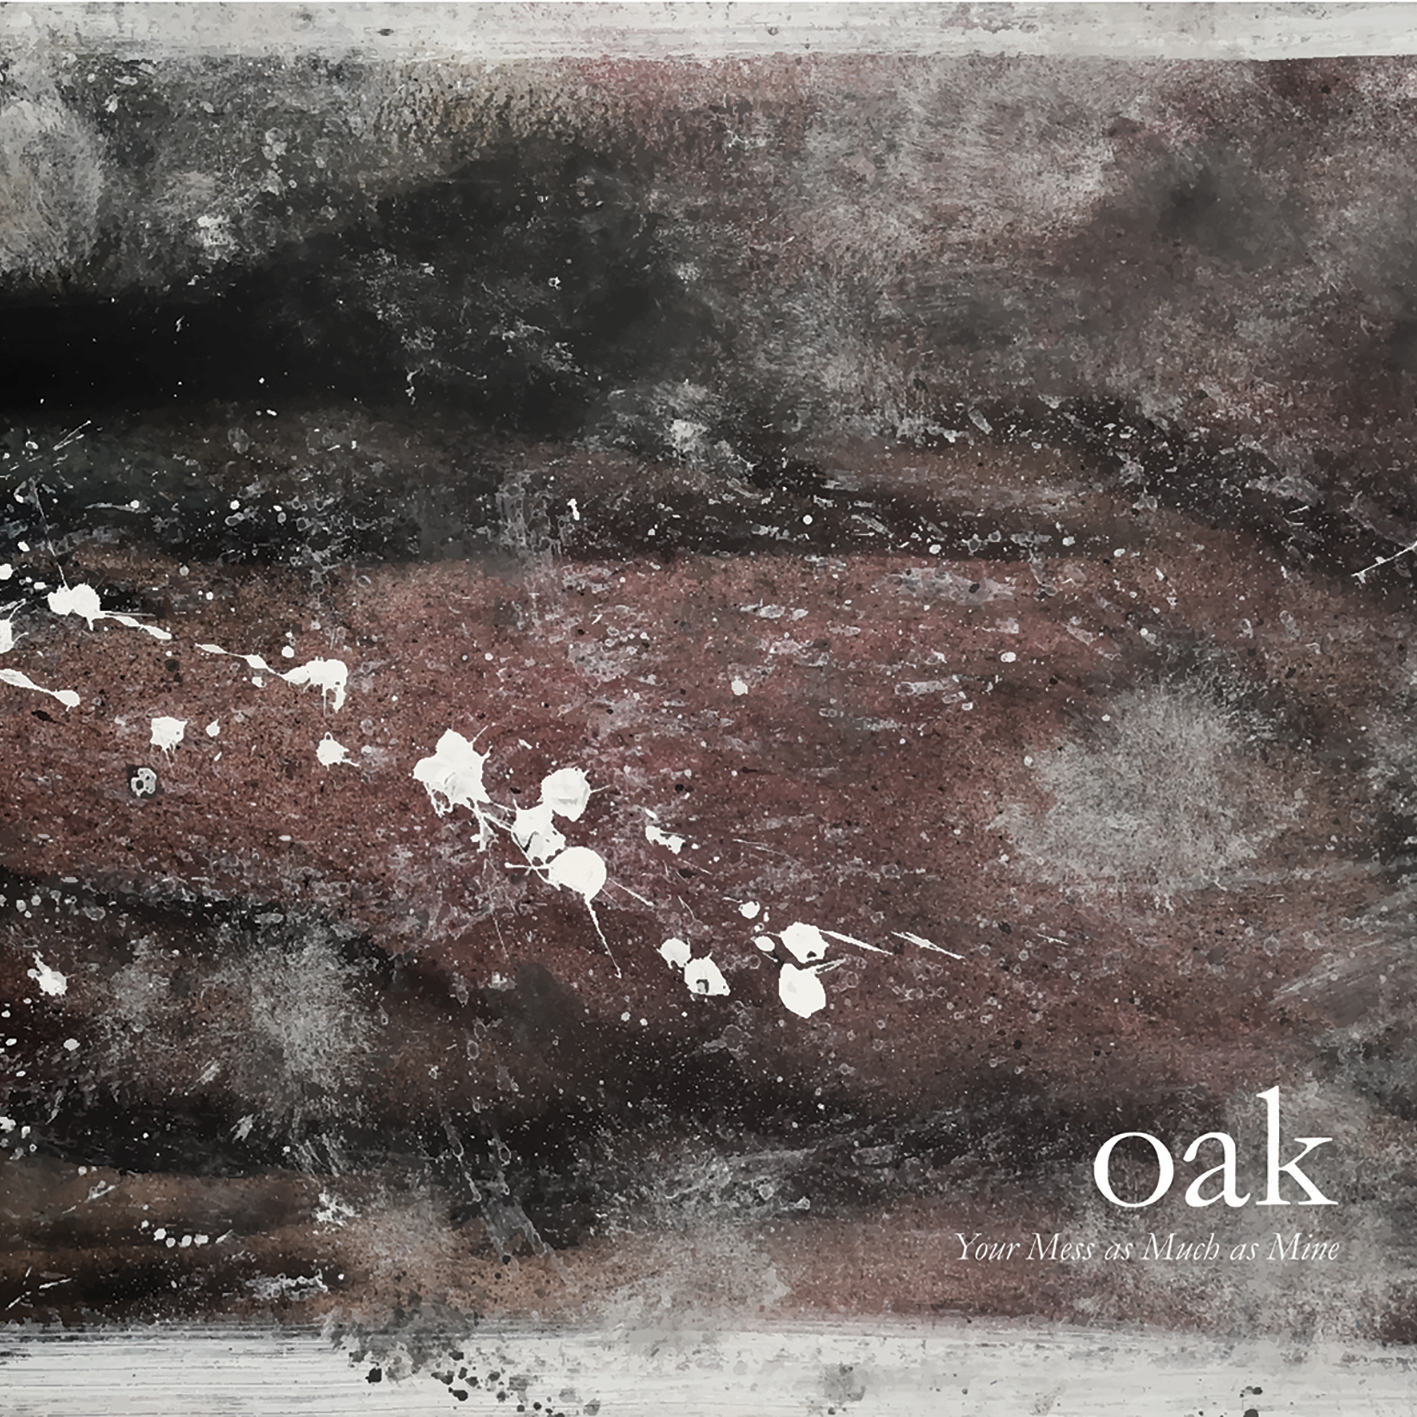 Oak - Your Mess as Much as Mine